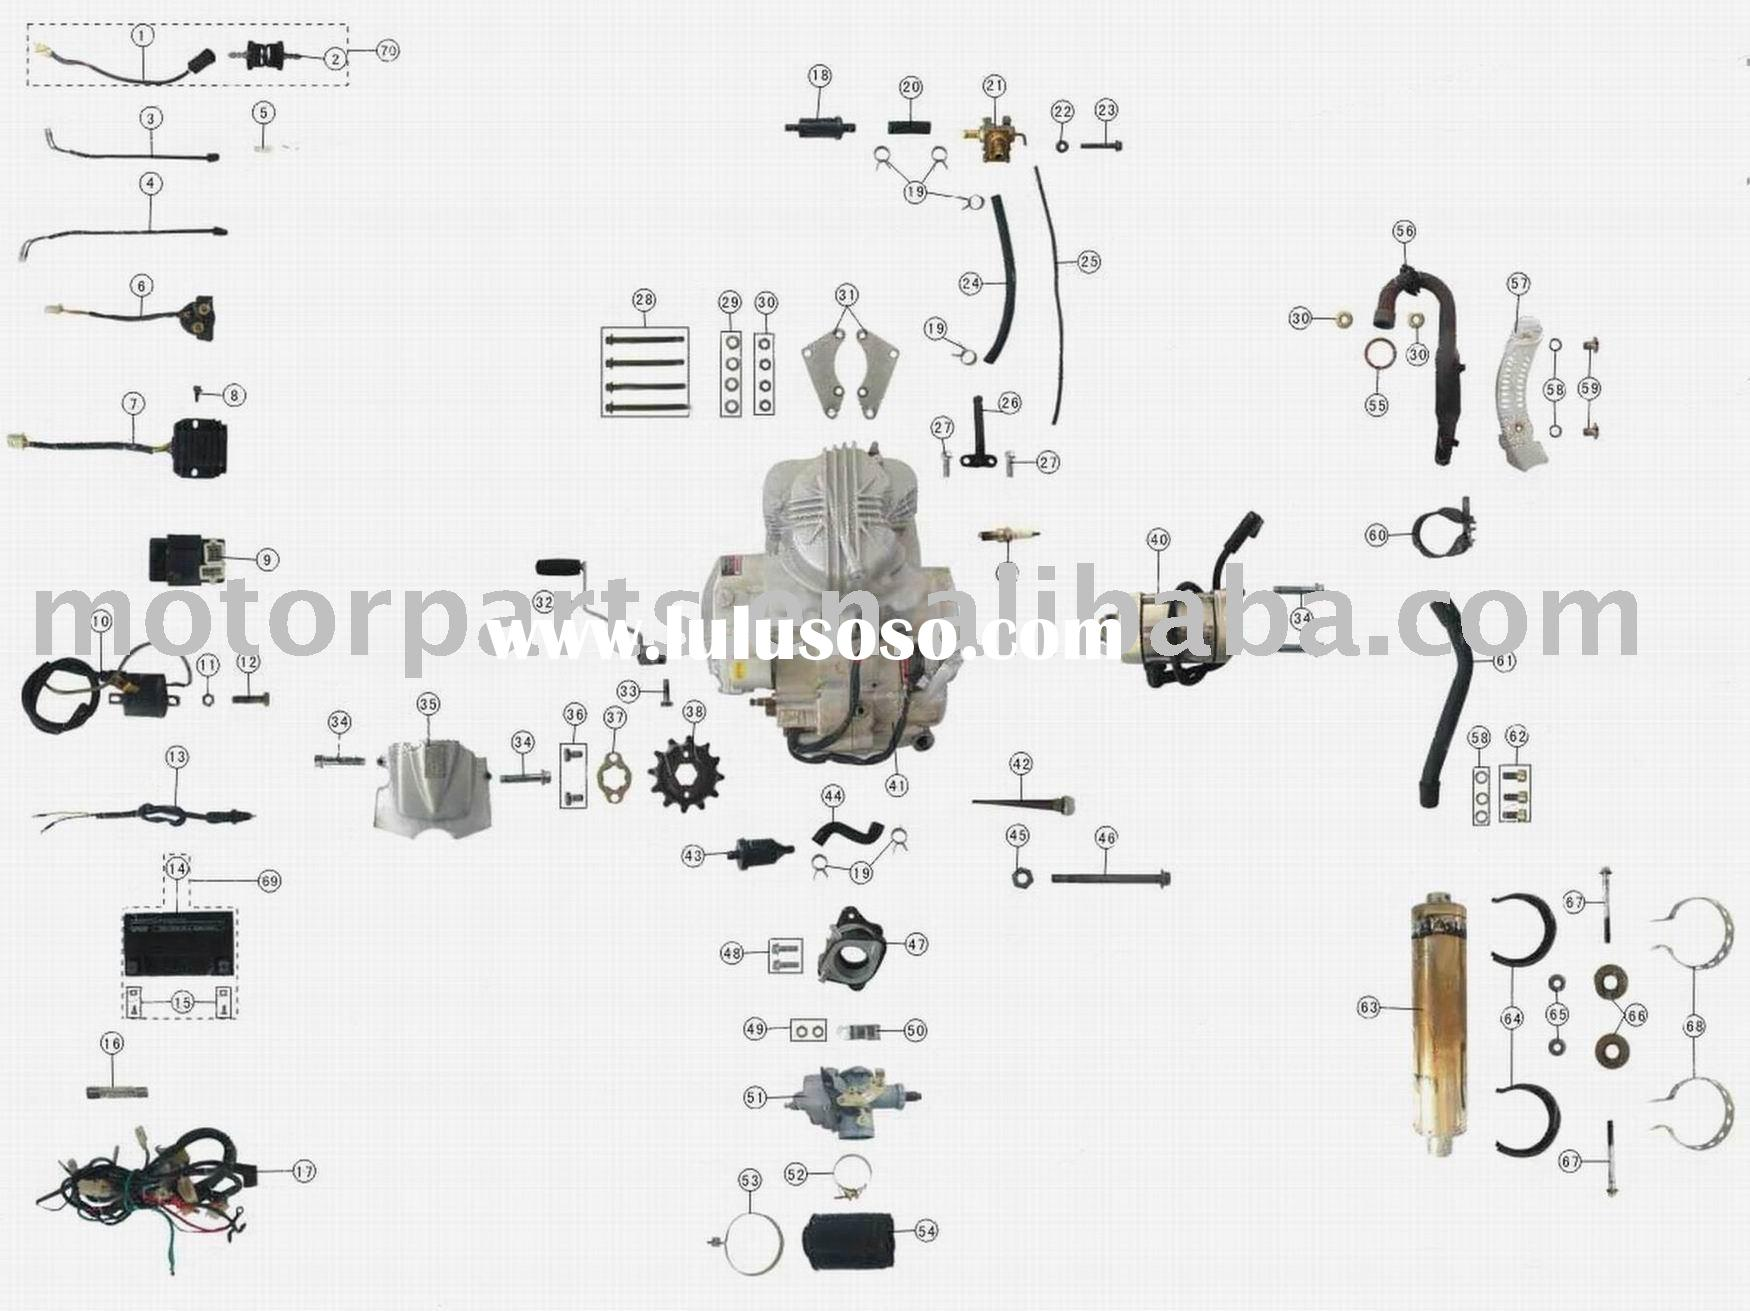 Carburetor Parts Mikuni Diagram Atv Carburetors